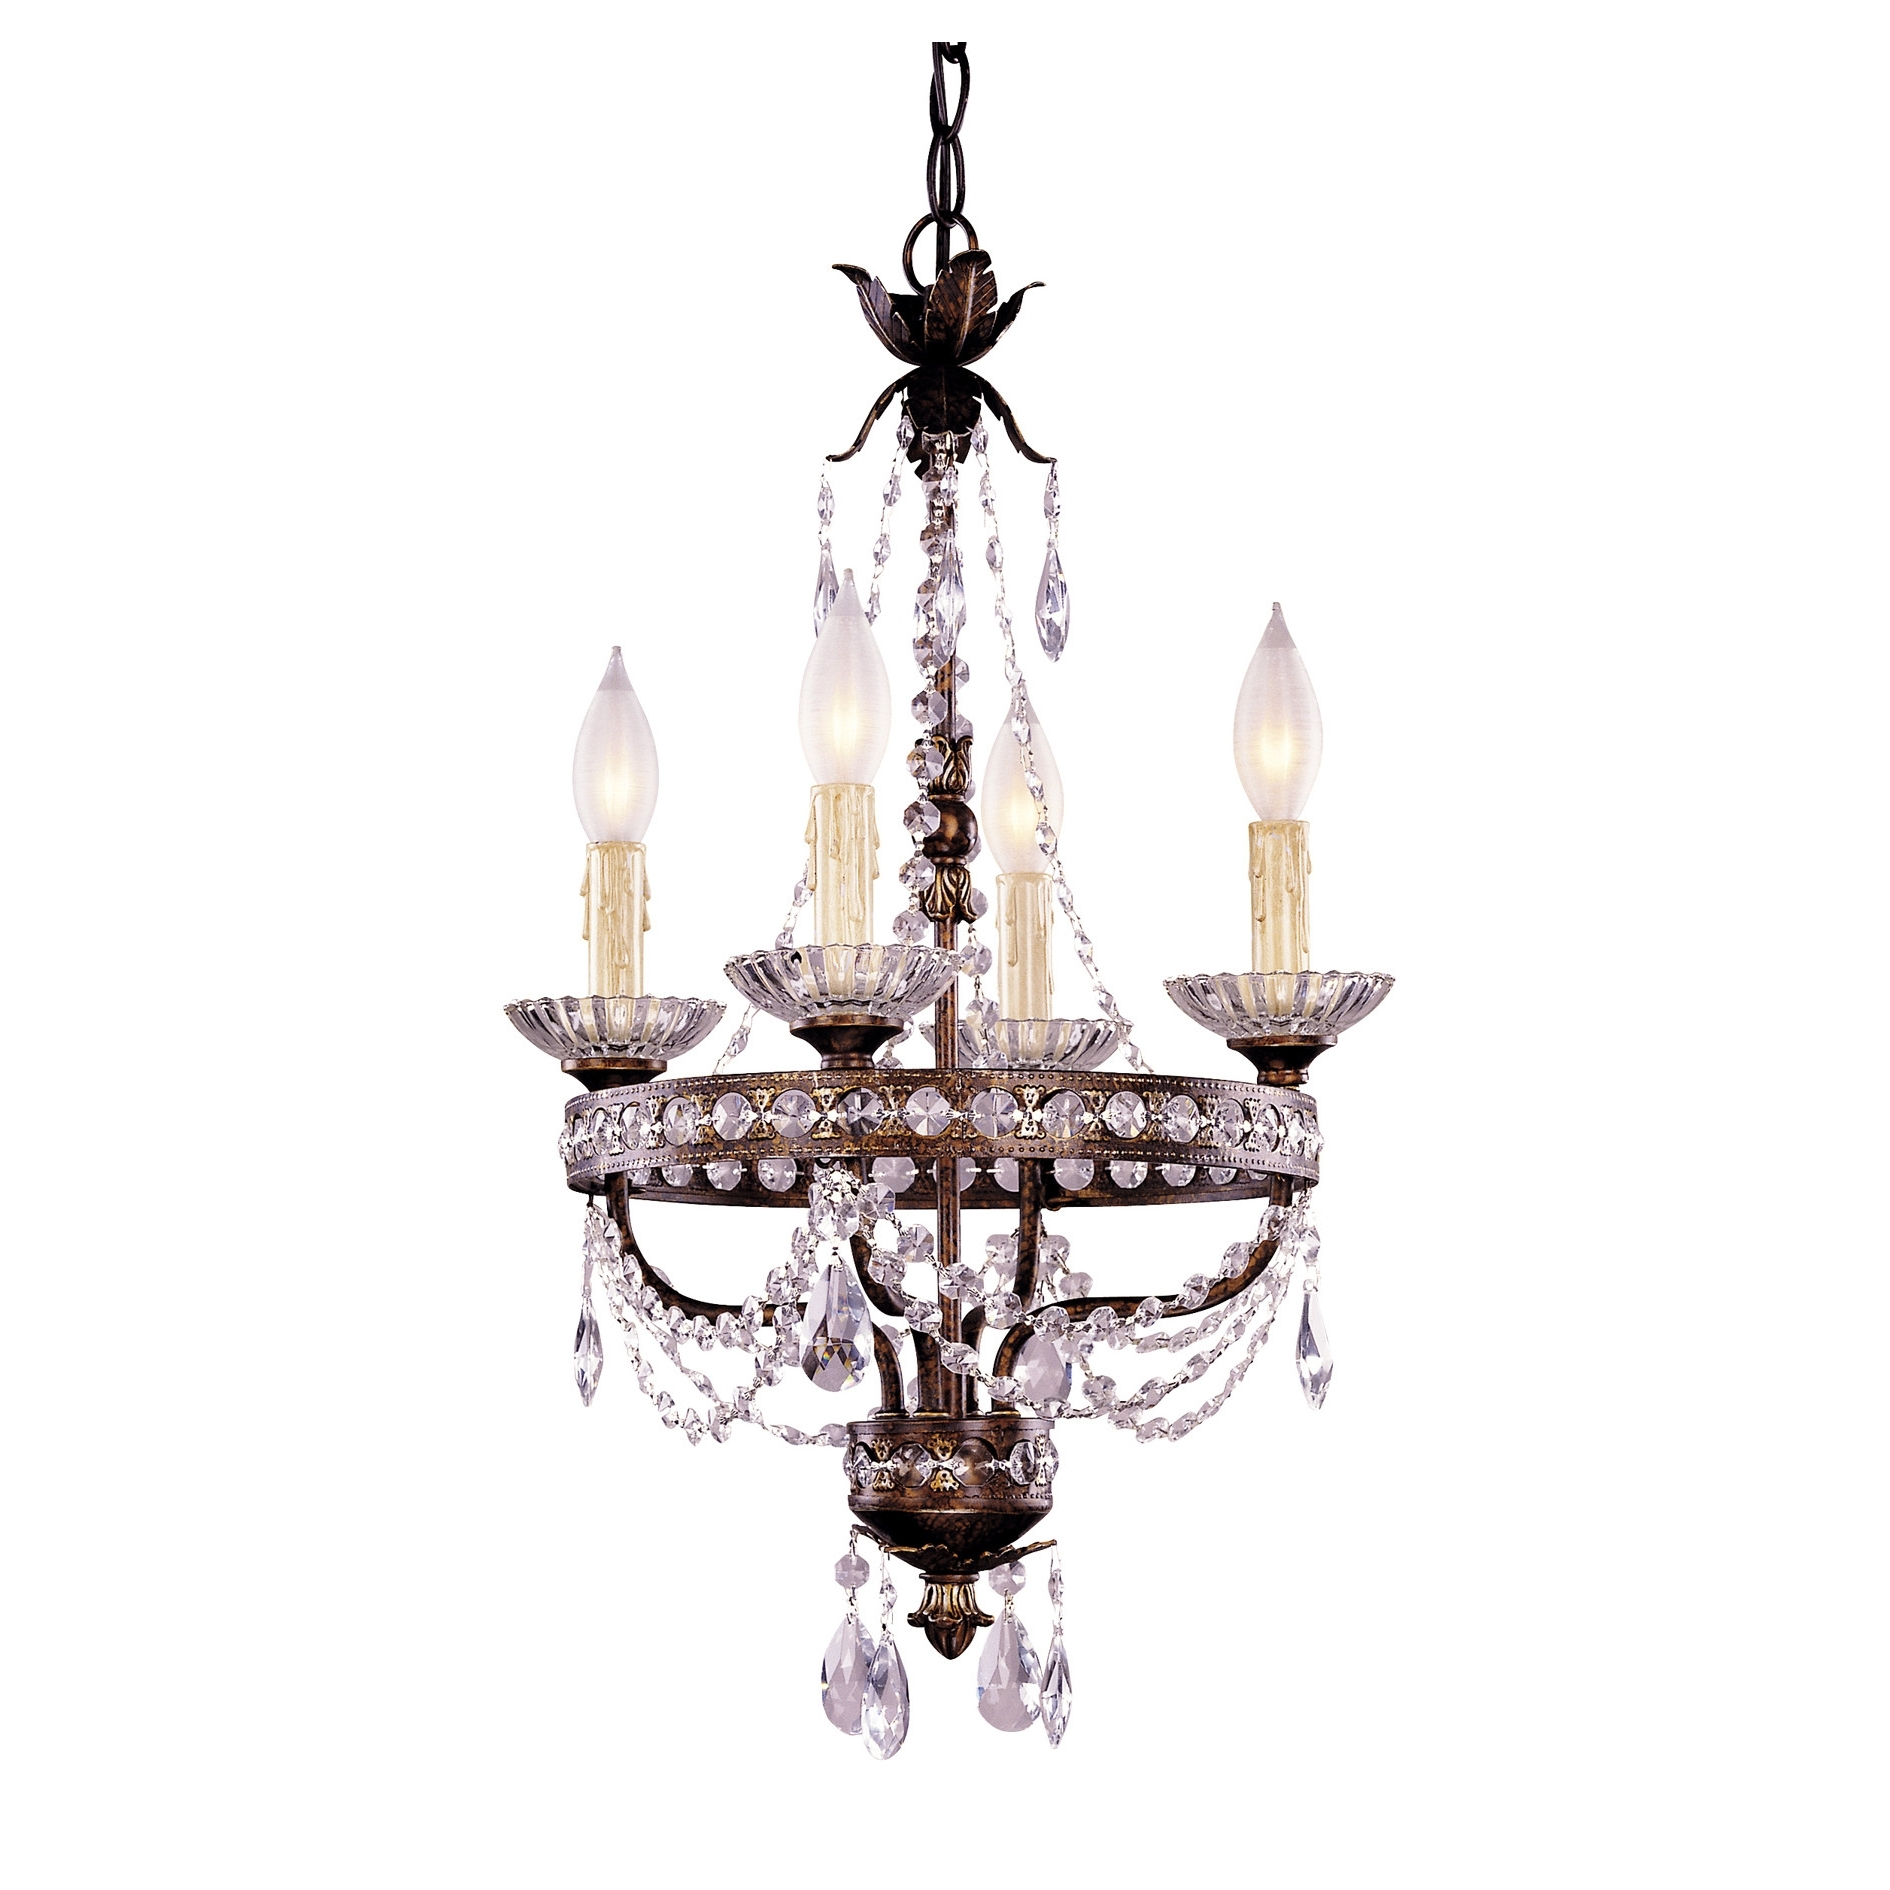 2019 Light : Simple Elegant Chandeliers Savoy House Fan Chandelier For Savoy House Chandeliers (View 3 of 20)